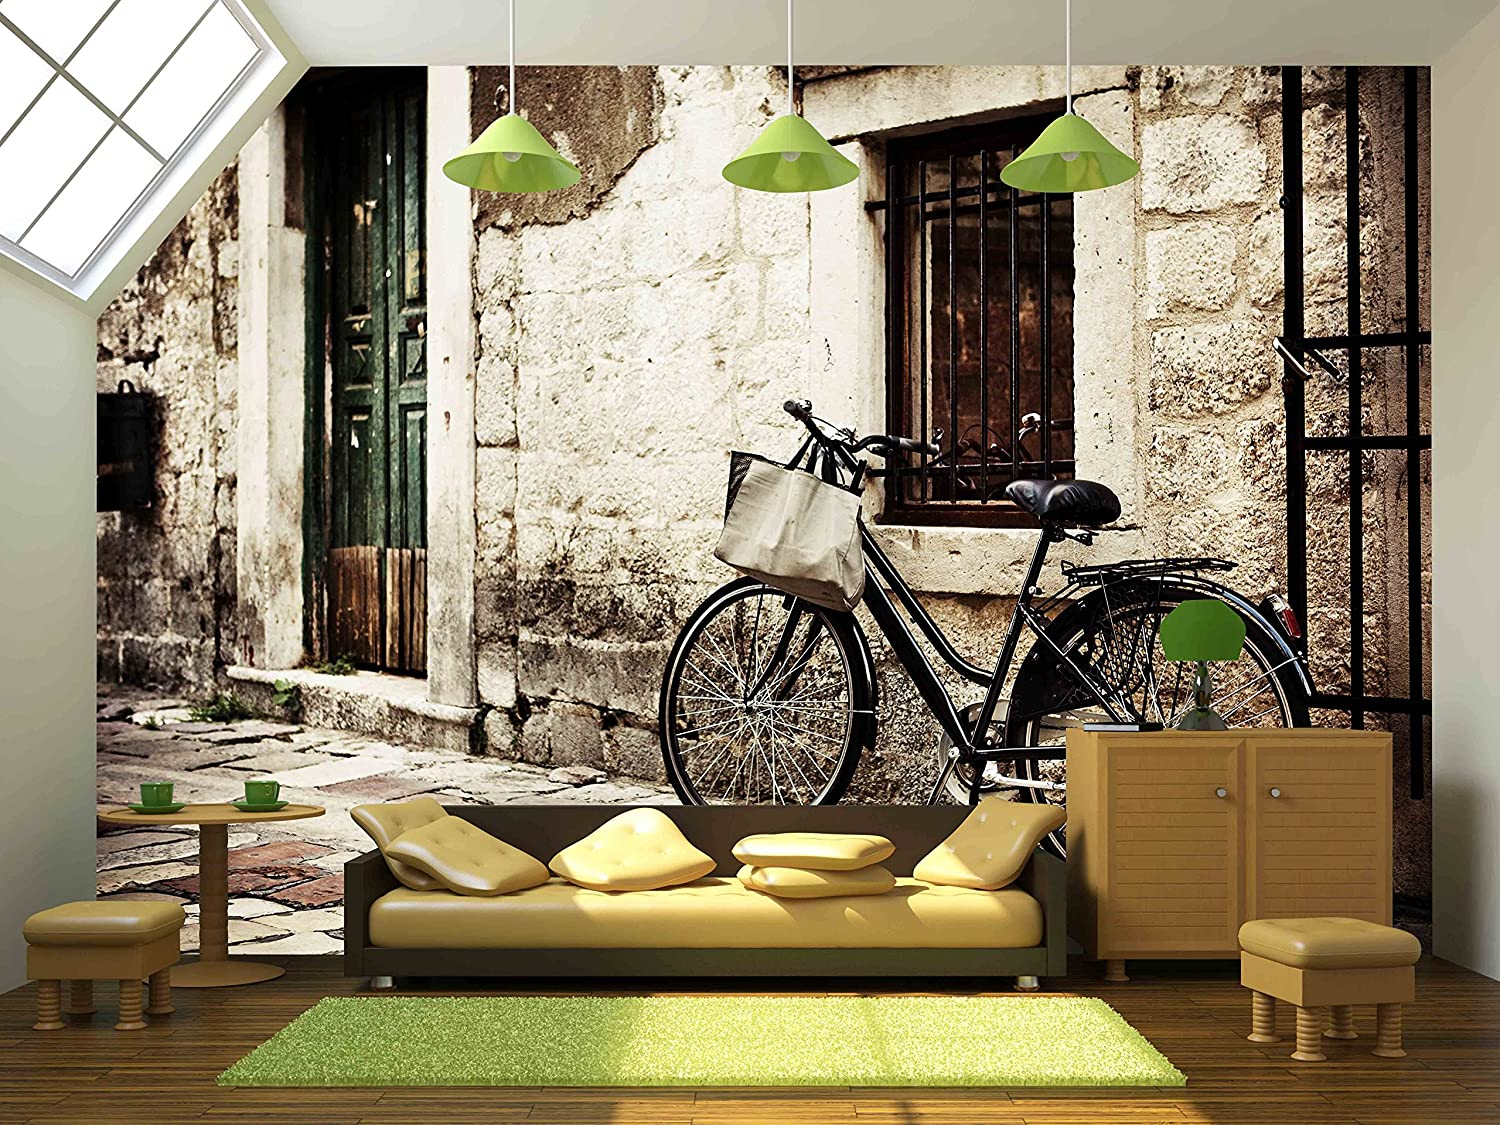 wall26 com art prints framed art canvas prints greeting wall26 bicycle with a shopping bag on handle bar left beside old stone wall removable wall mural self adhesive large wallpaper 100x144 inches